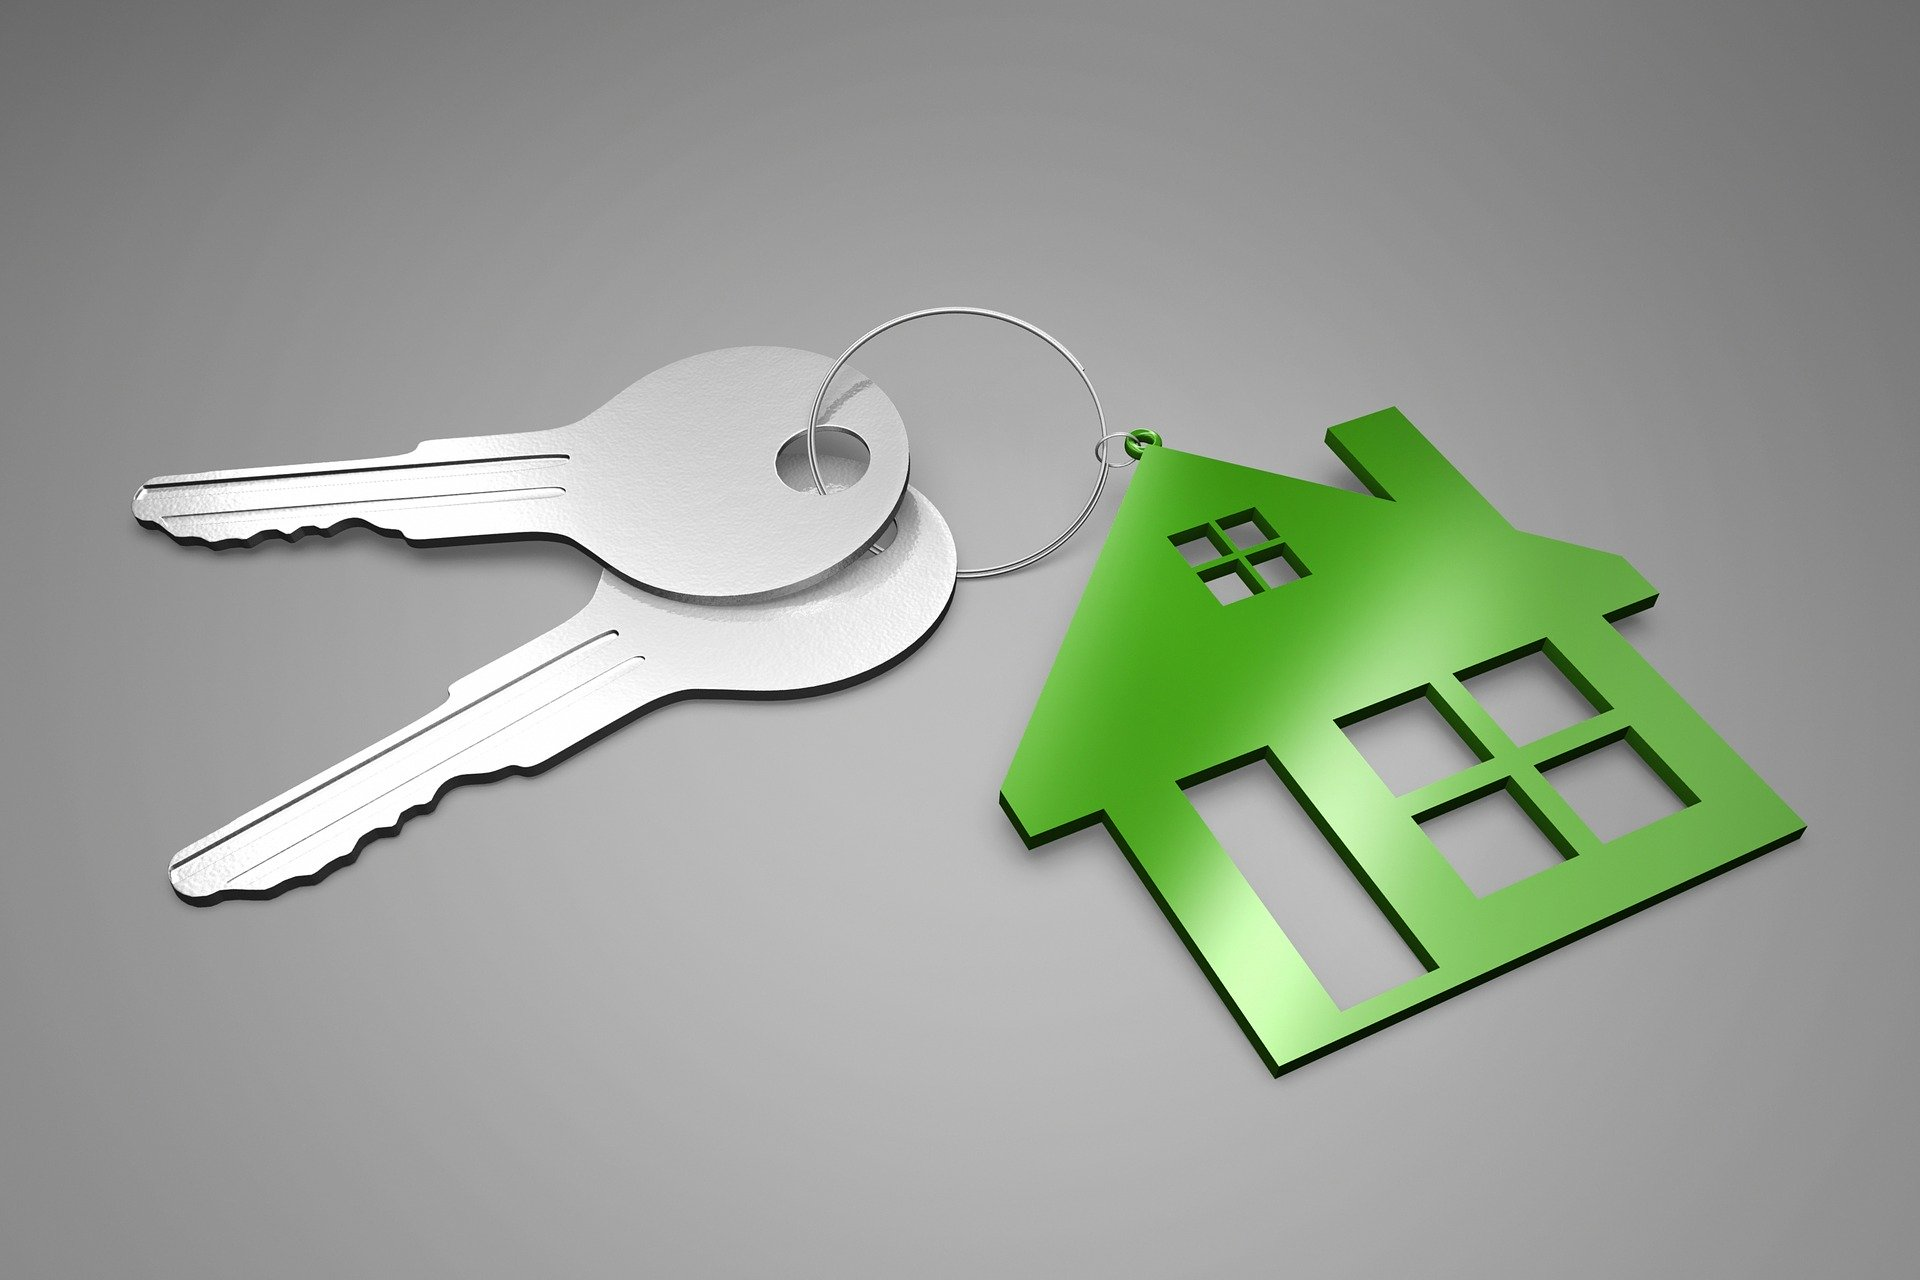 Landlord and tenant relationships